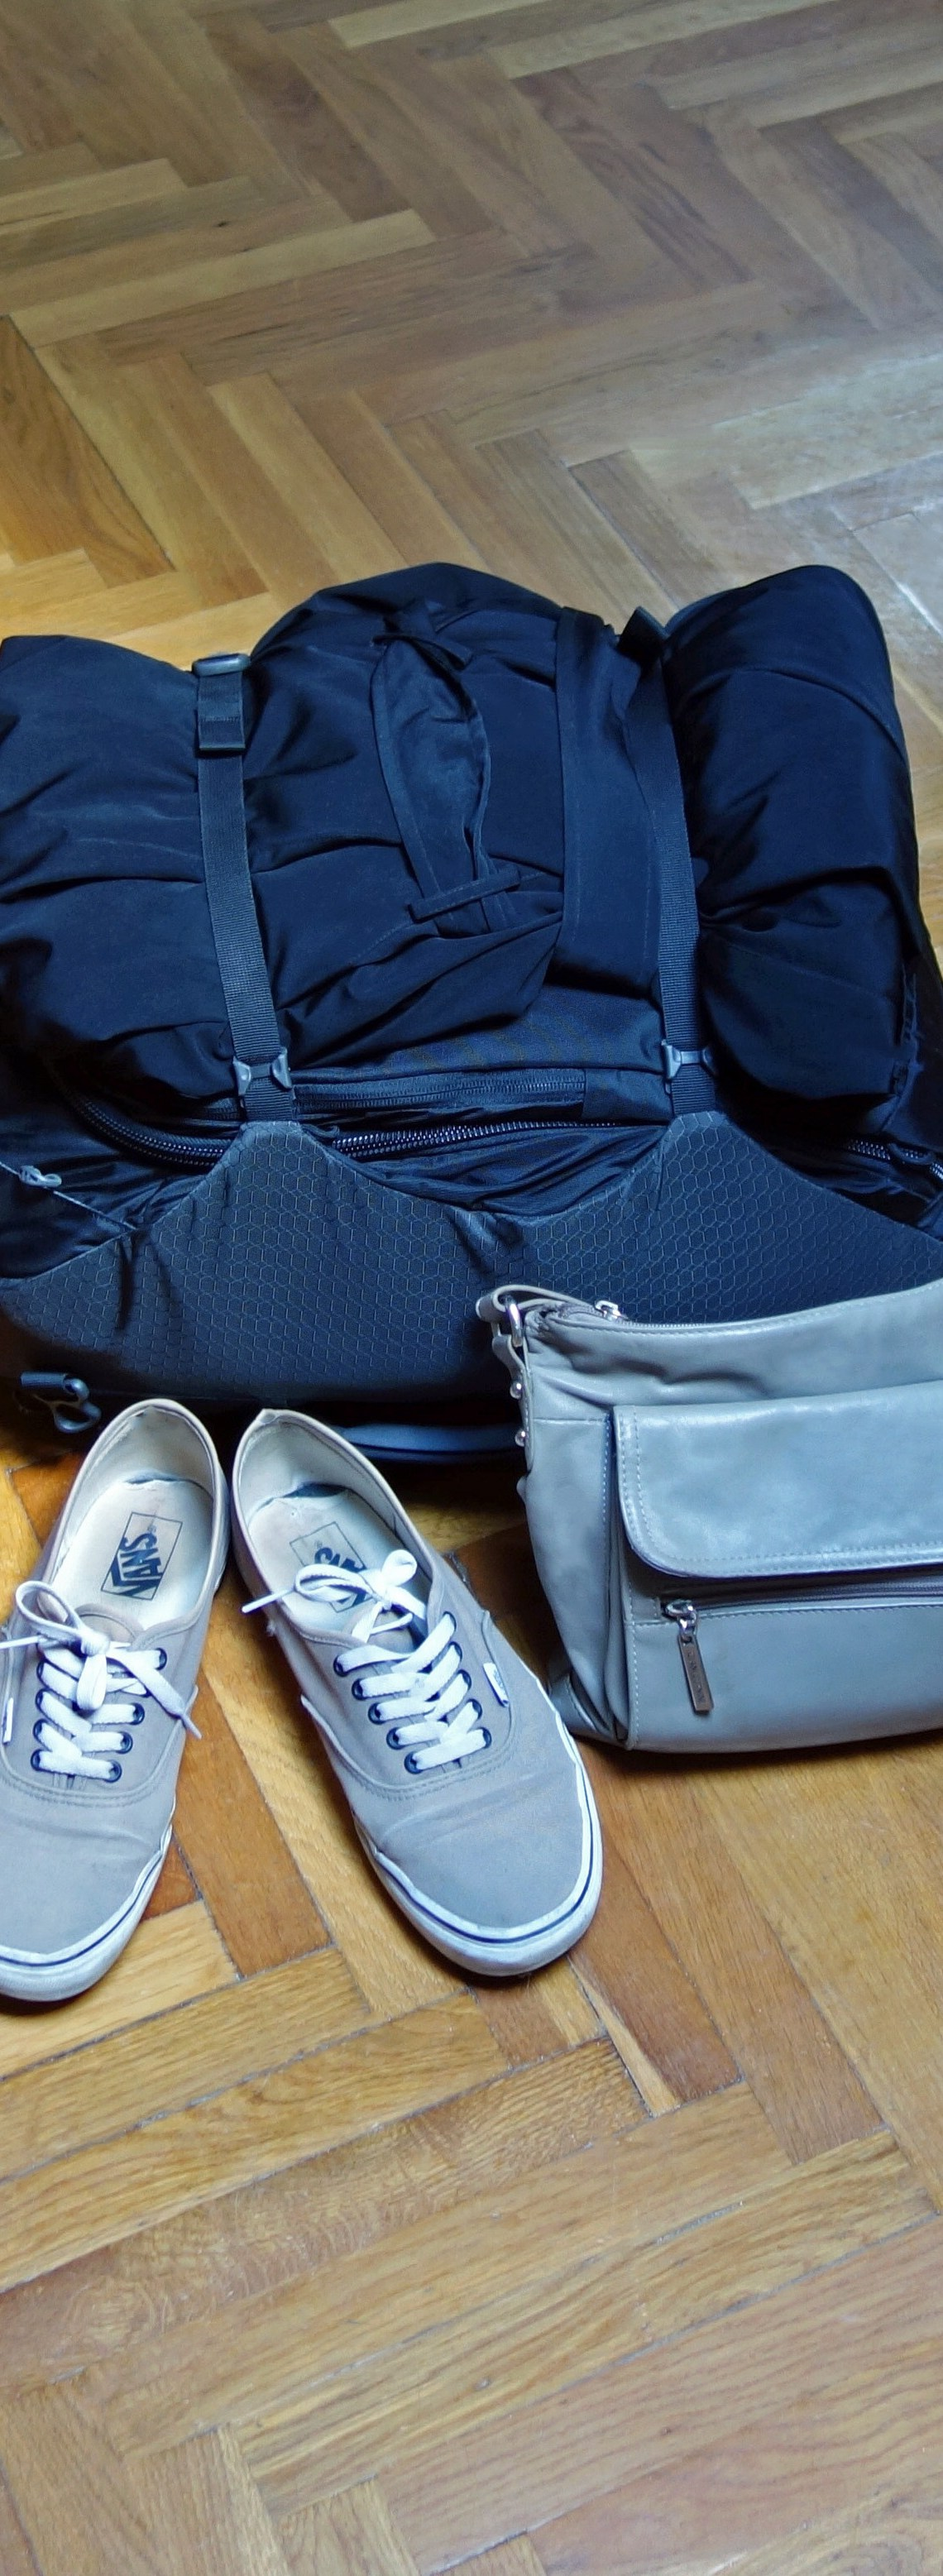 The Best Carry On Backpack for Budget-Friendly, Longterm Travel to Anywhere